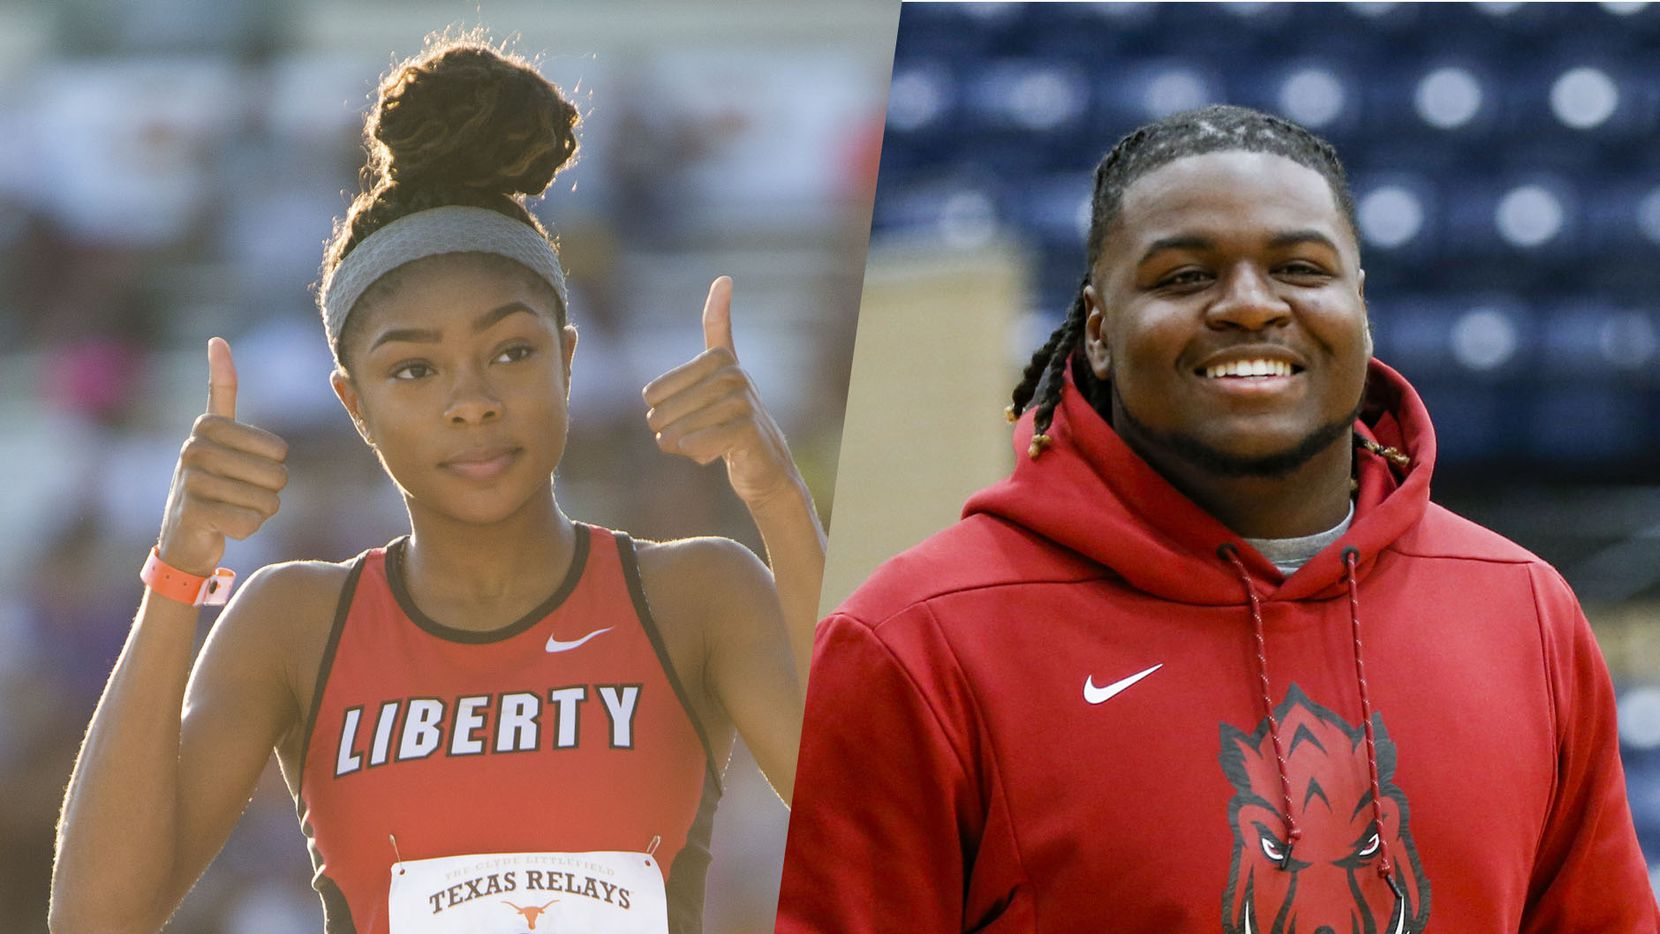 Frisco Liberty's Nissi Kabongo (left) and Mansfield Legacy's Taurean Carter (right).